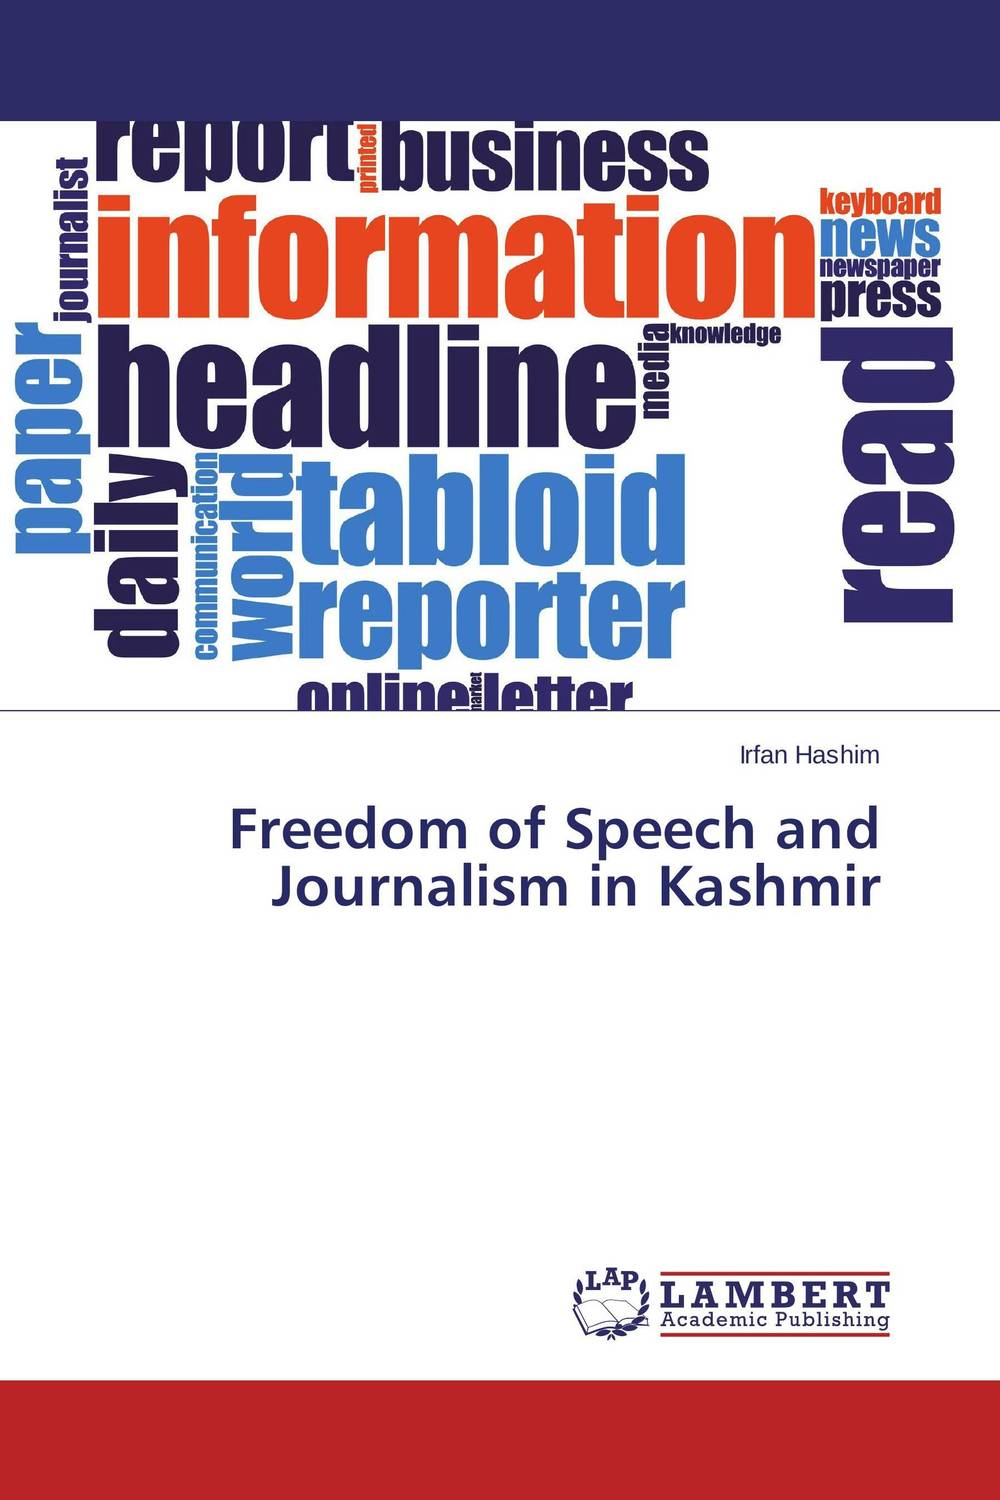 Freedom of Speech and Journalism in Kashmir mart laar the power of freedom